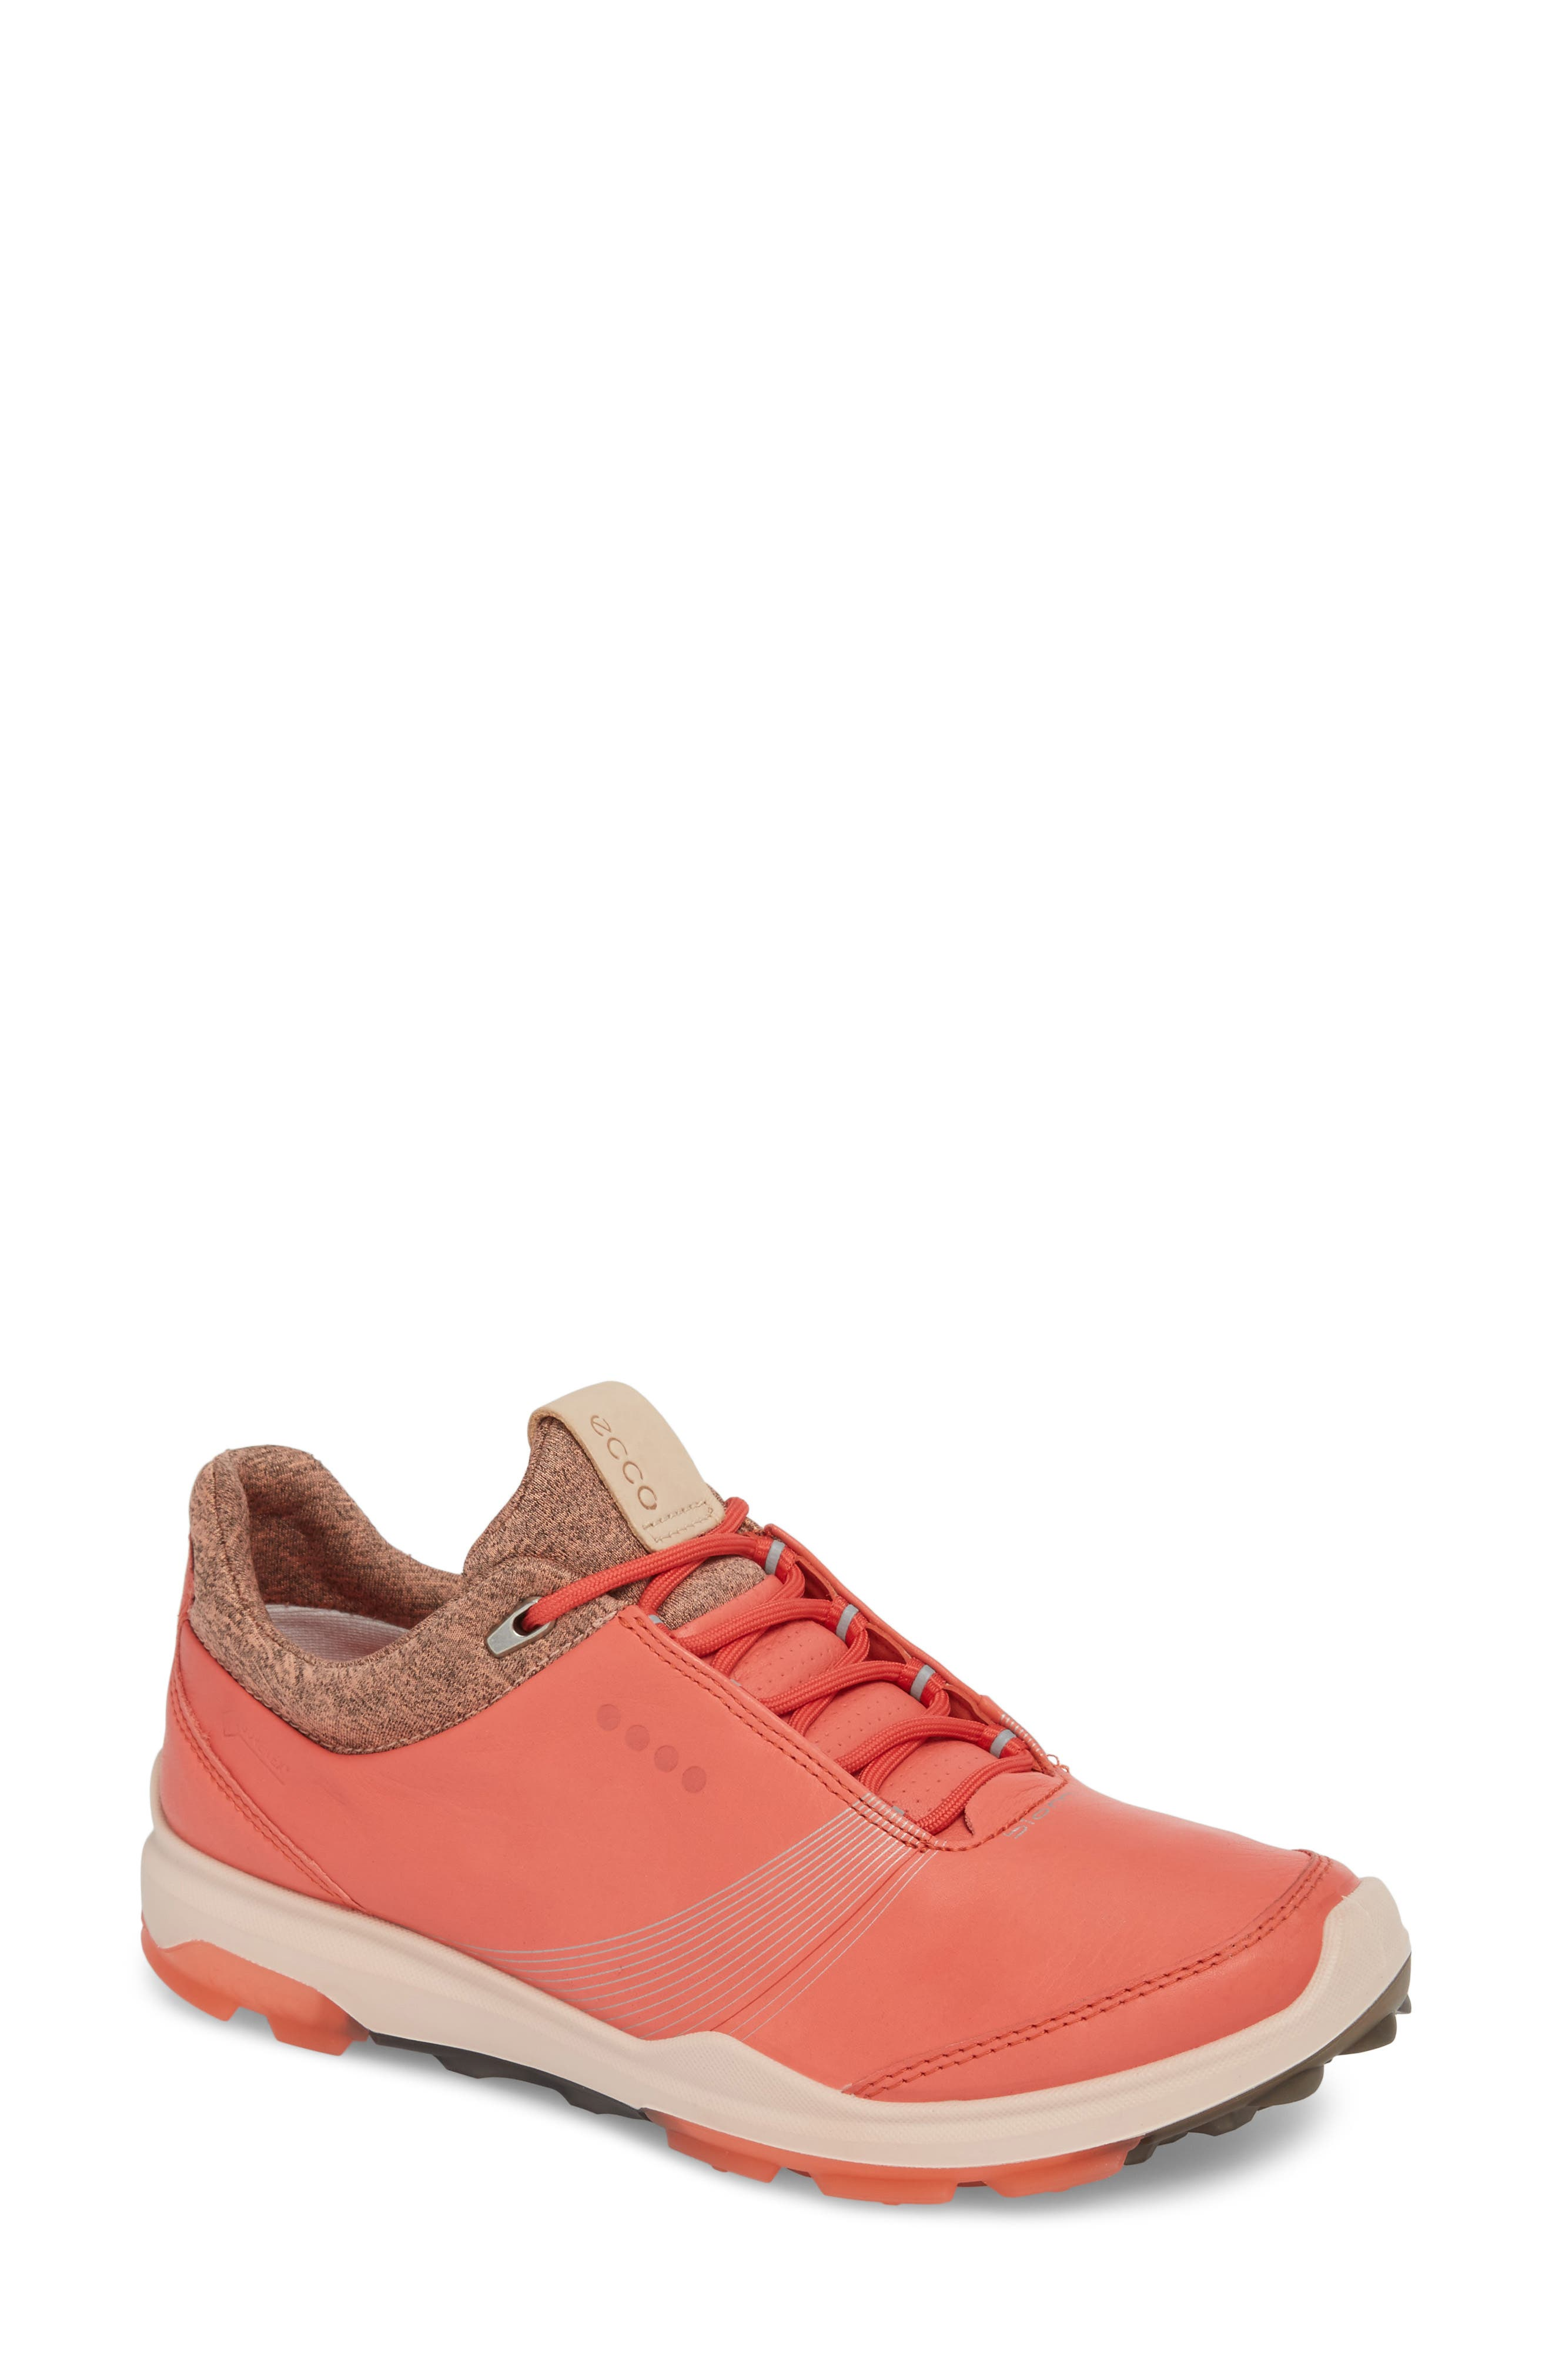 BIOM 2 Hybrid Gore-Tex<sup>®</sup> Golf Shoe,                         Main,                         color, Spiced Coral Leather